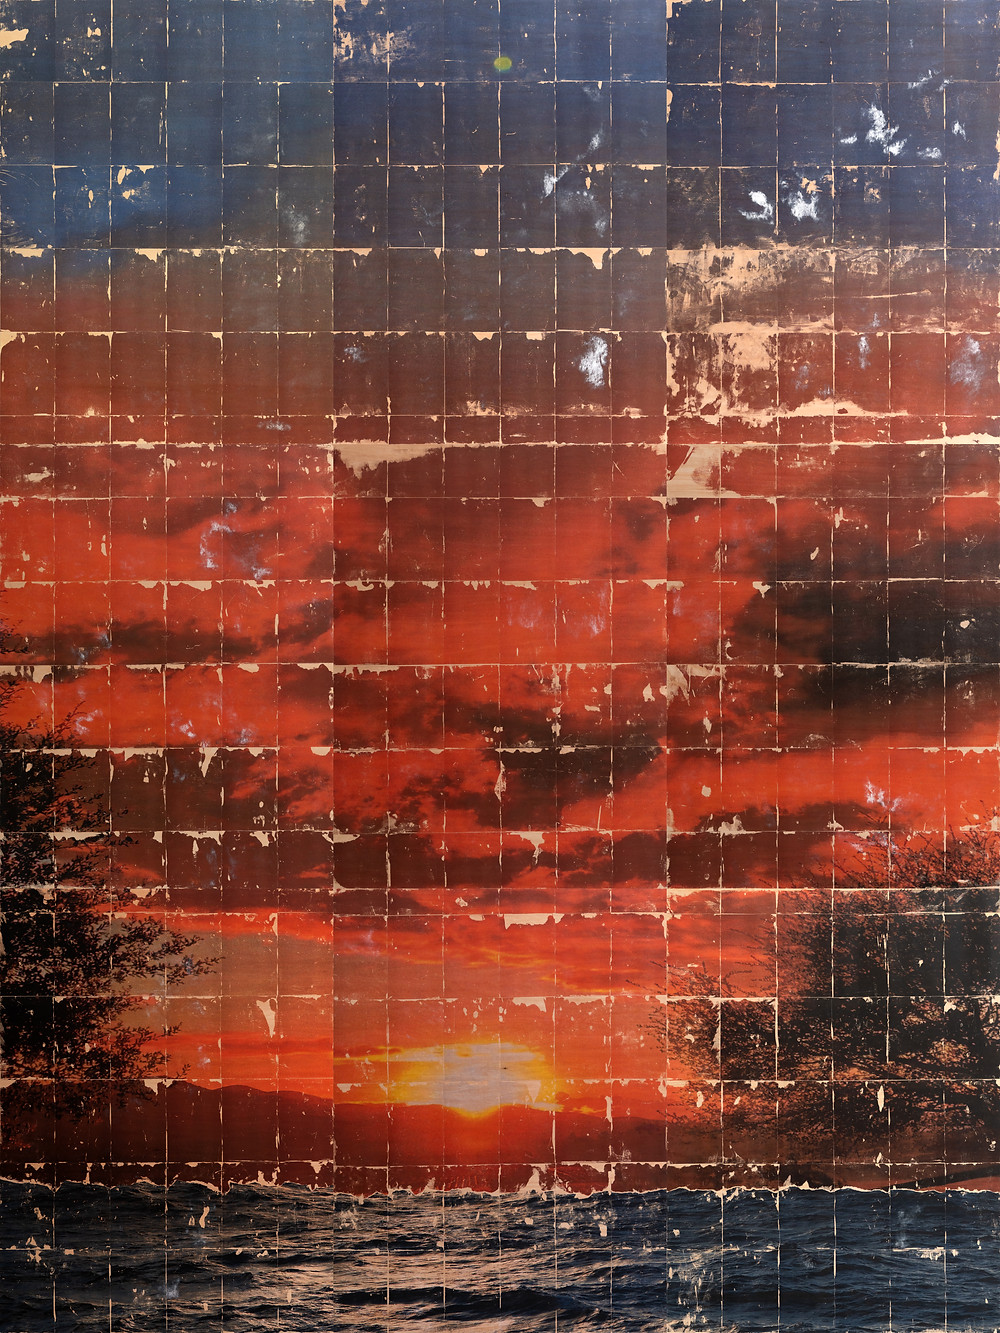 Large thermal transfer art piece depicting ocean, sunset, sky